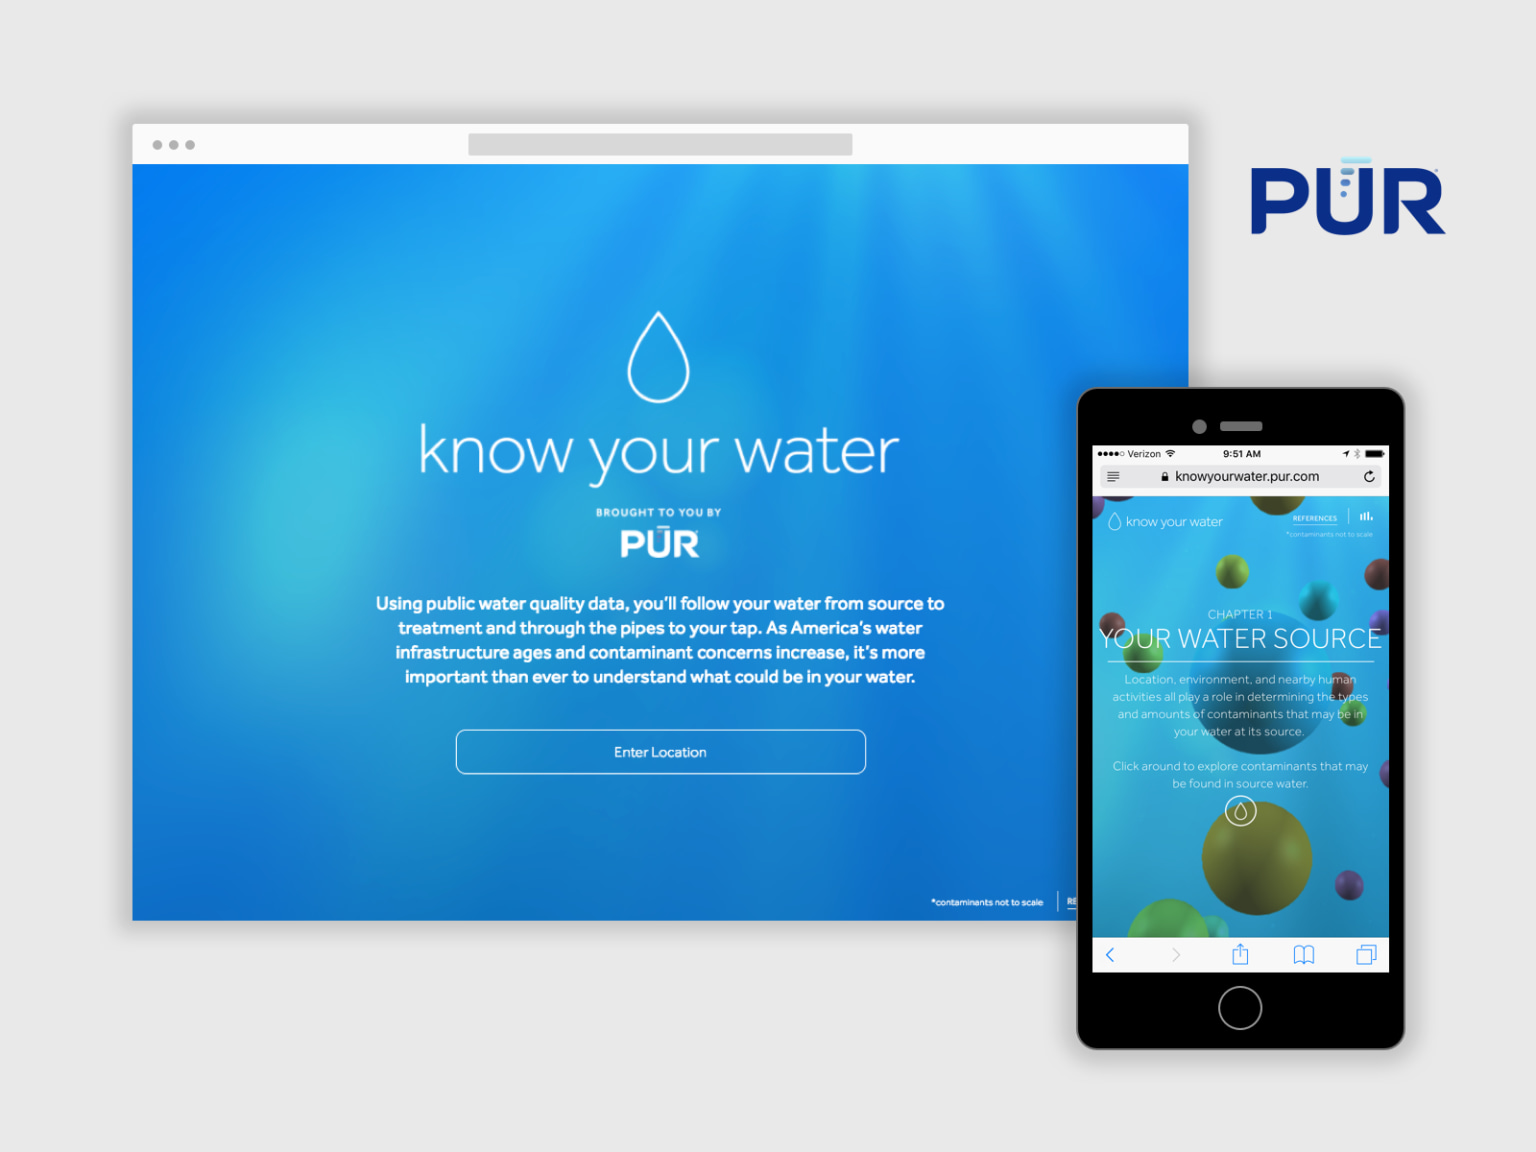 PUR - Know Your Water